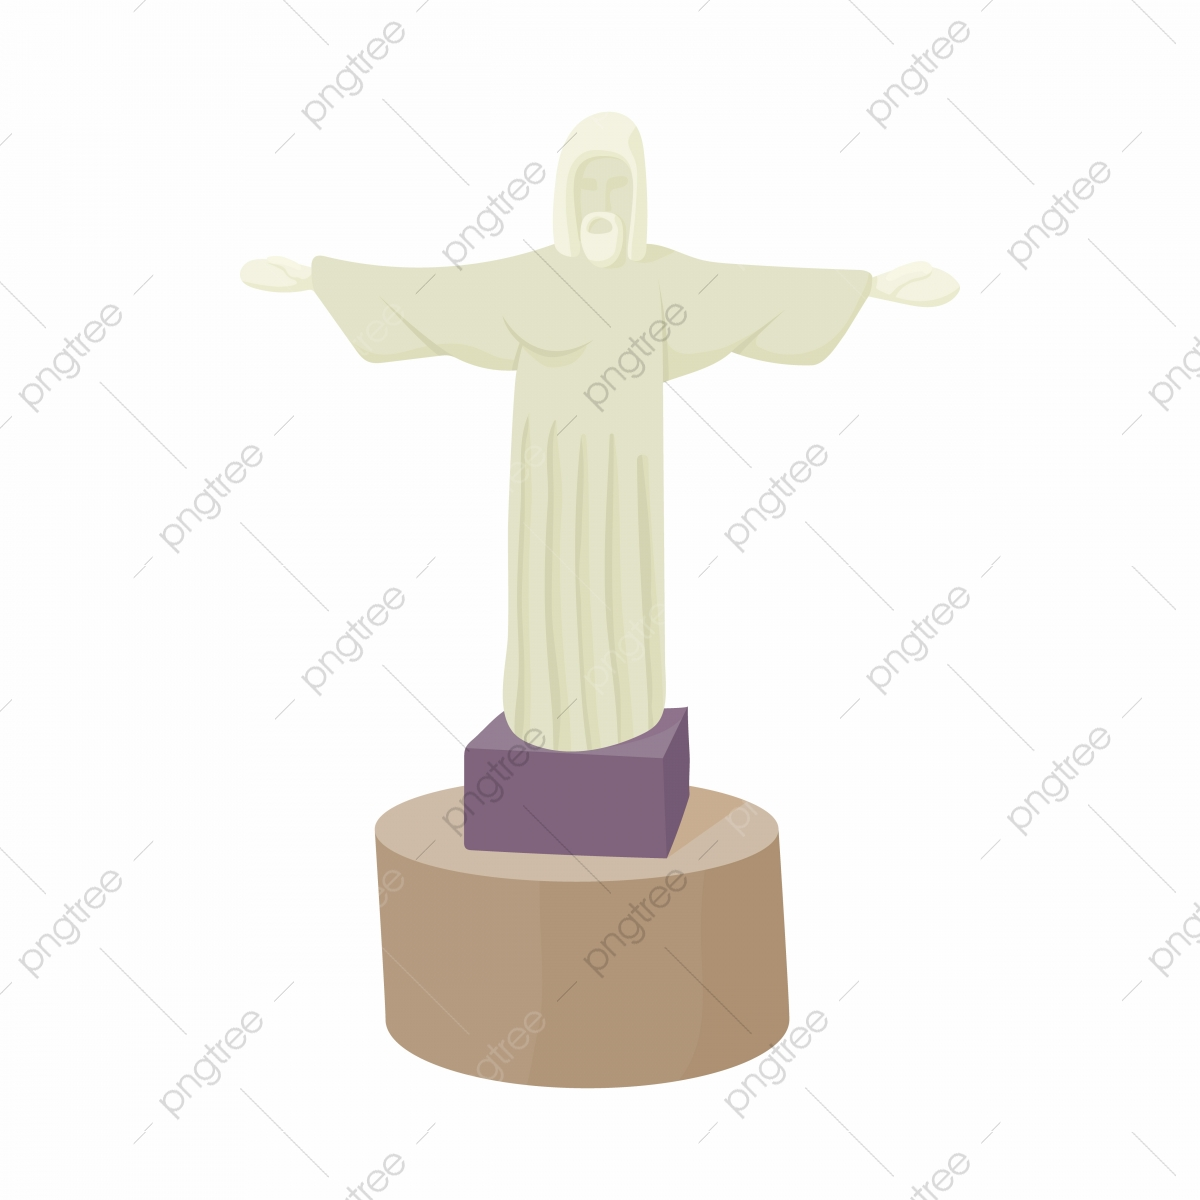 Estatua De Cristo Redentor Icone Estilo Cartoon Estatua Cristo